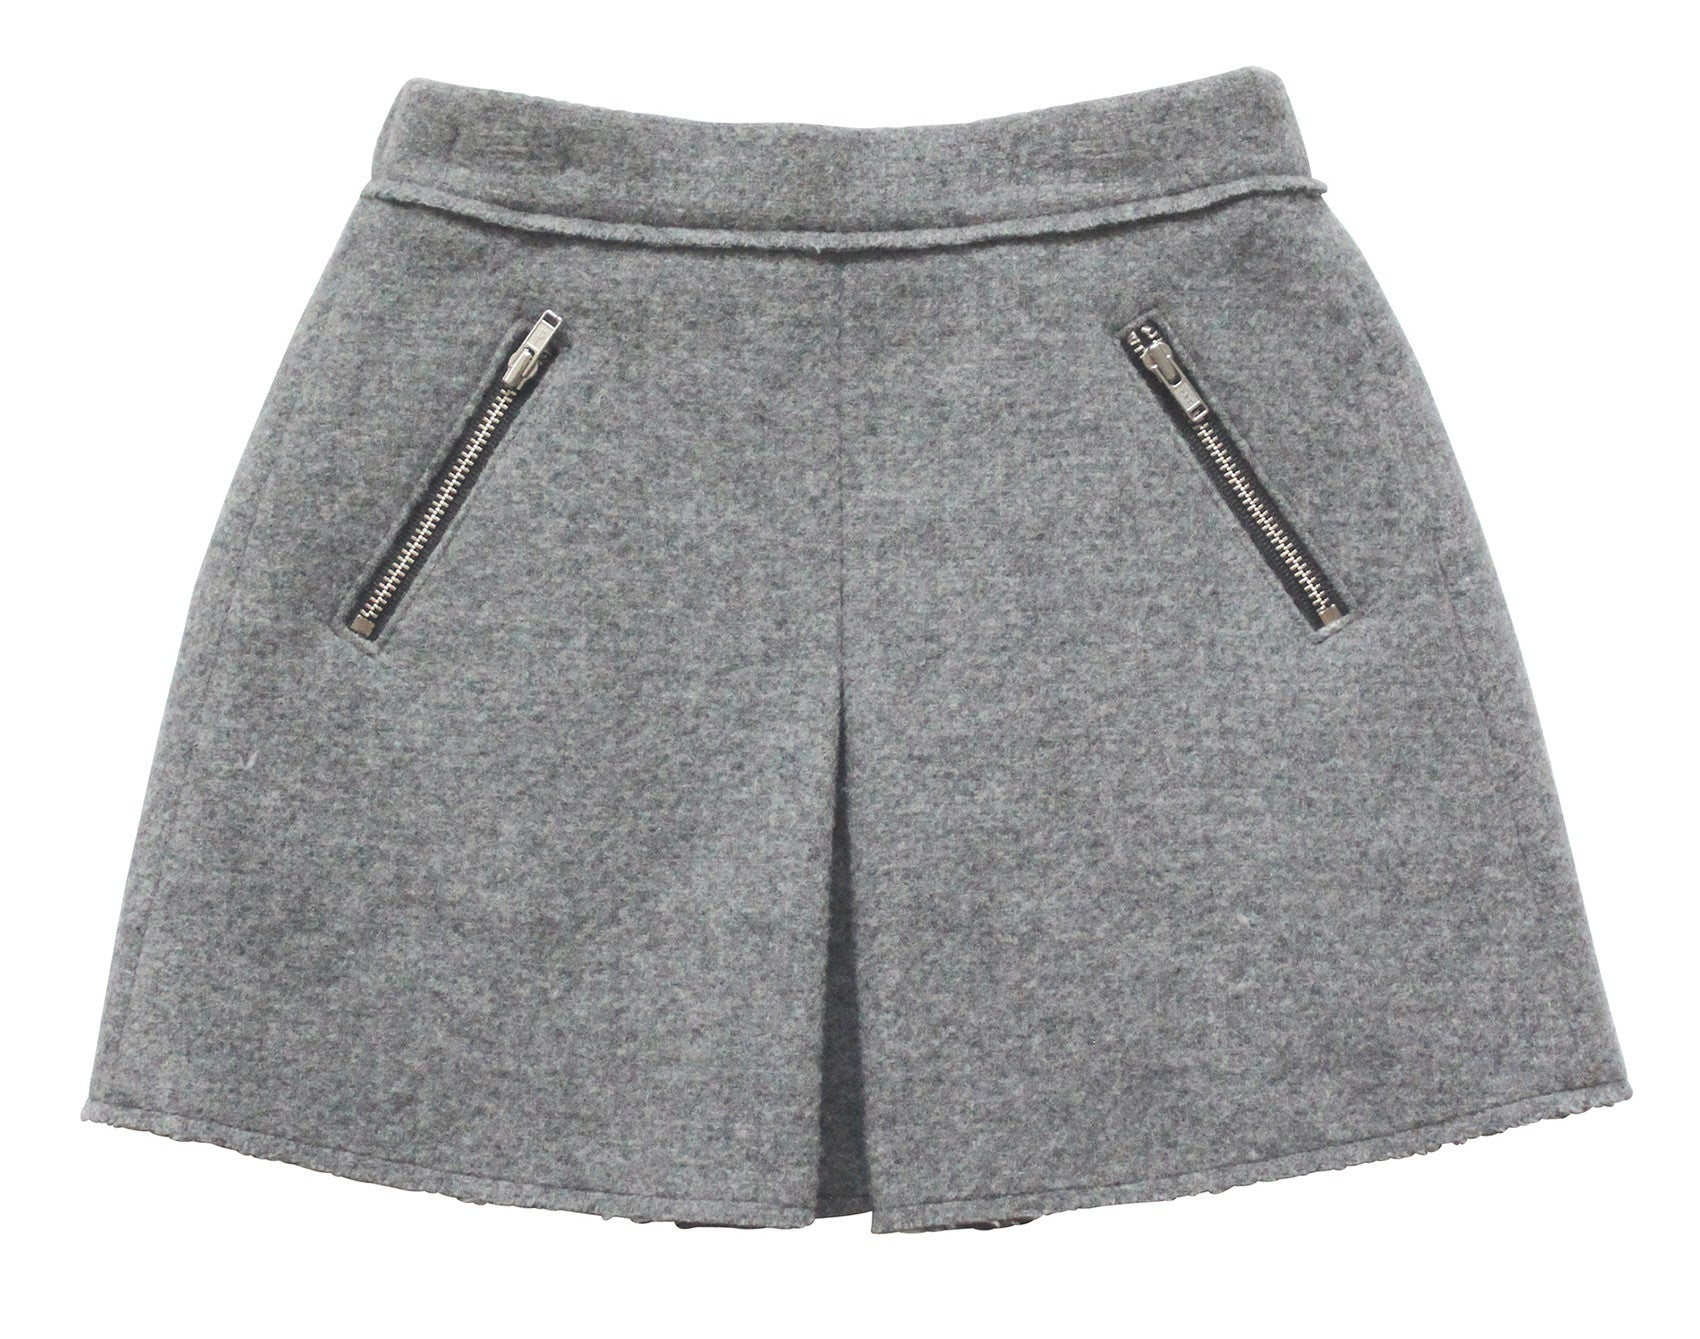 Dinui Grey Jasmin Skirt - Ladida